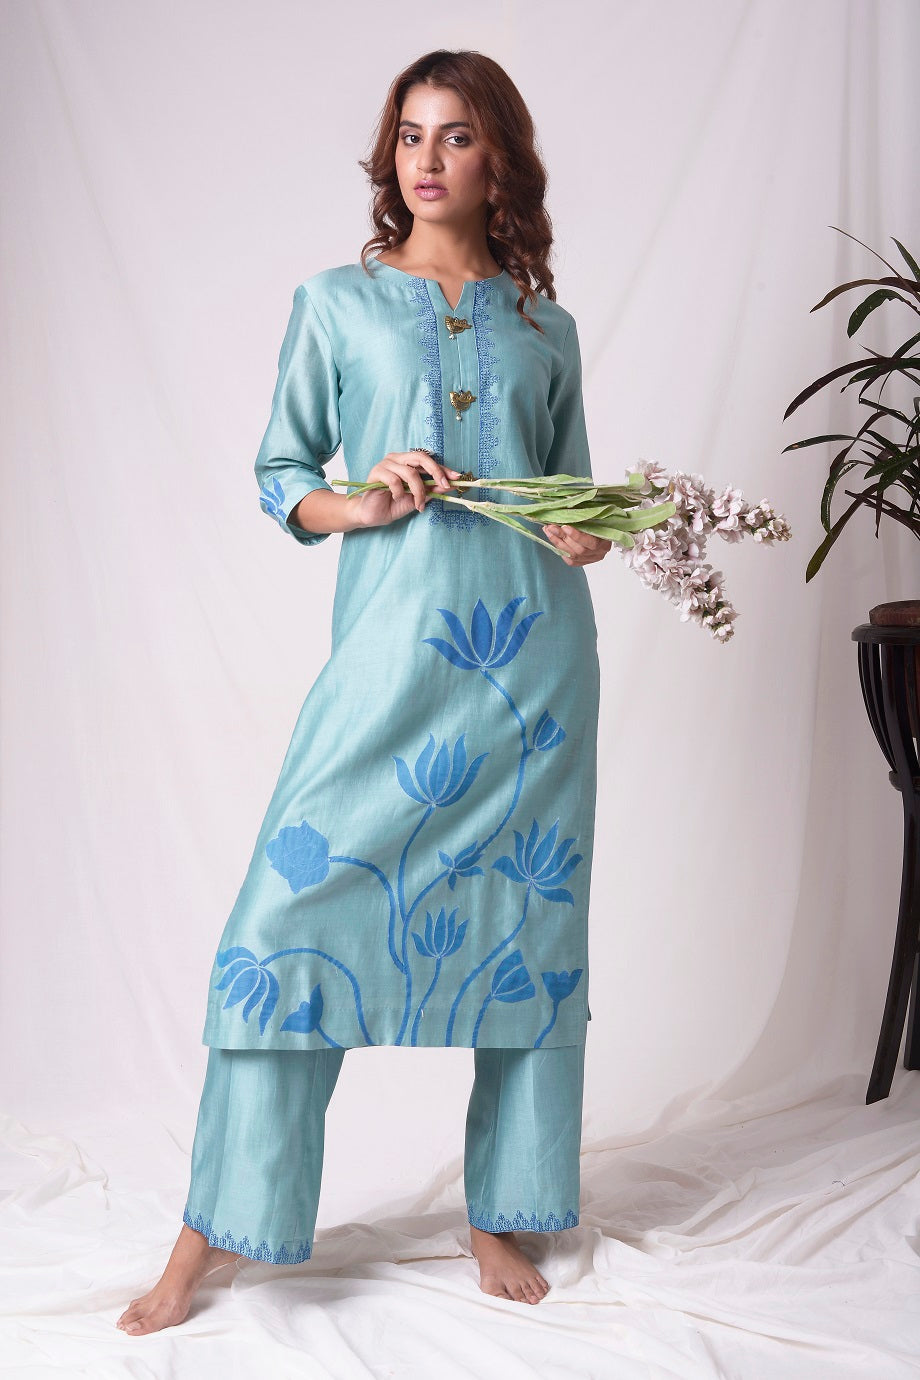 Buy aqua blue chanderi suit online in USA. Be the talk of parties and weddings with exquisite designer gowns, sharara suits, Anarkali suits, salwar suits from Pure Elegance Indian clothing store in USA. Shop online now.-full view